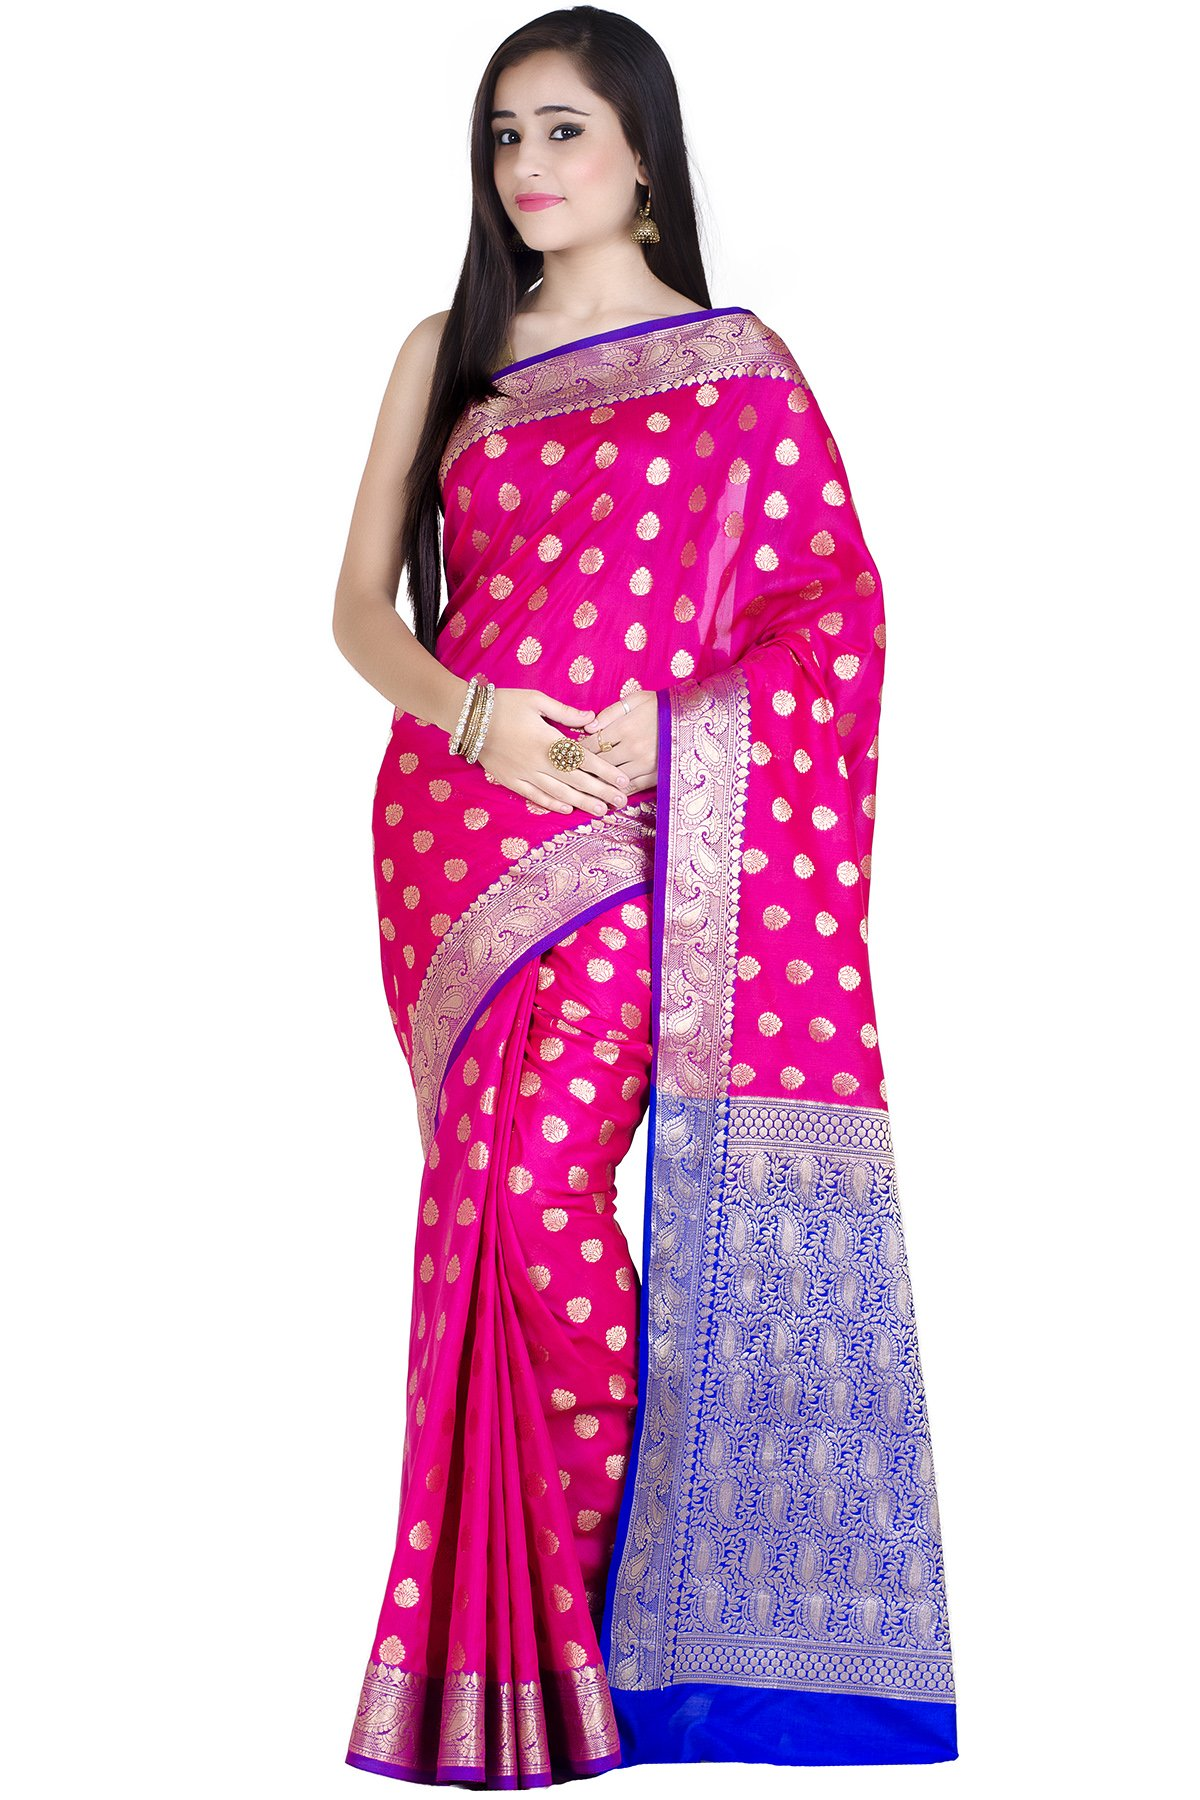 Chandrakala Women's Pink Kataan Silk Banarasi Saree(1234PIN)